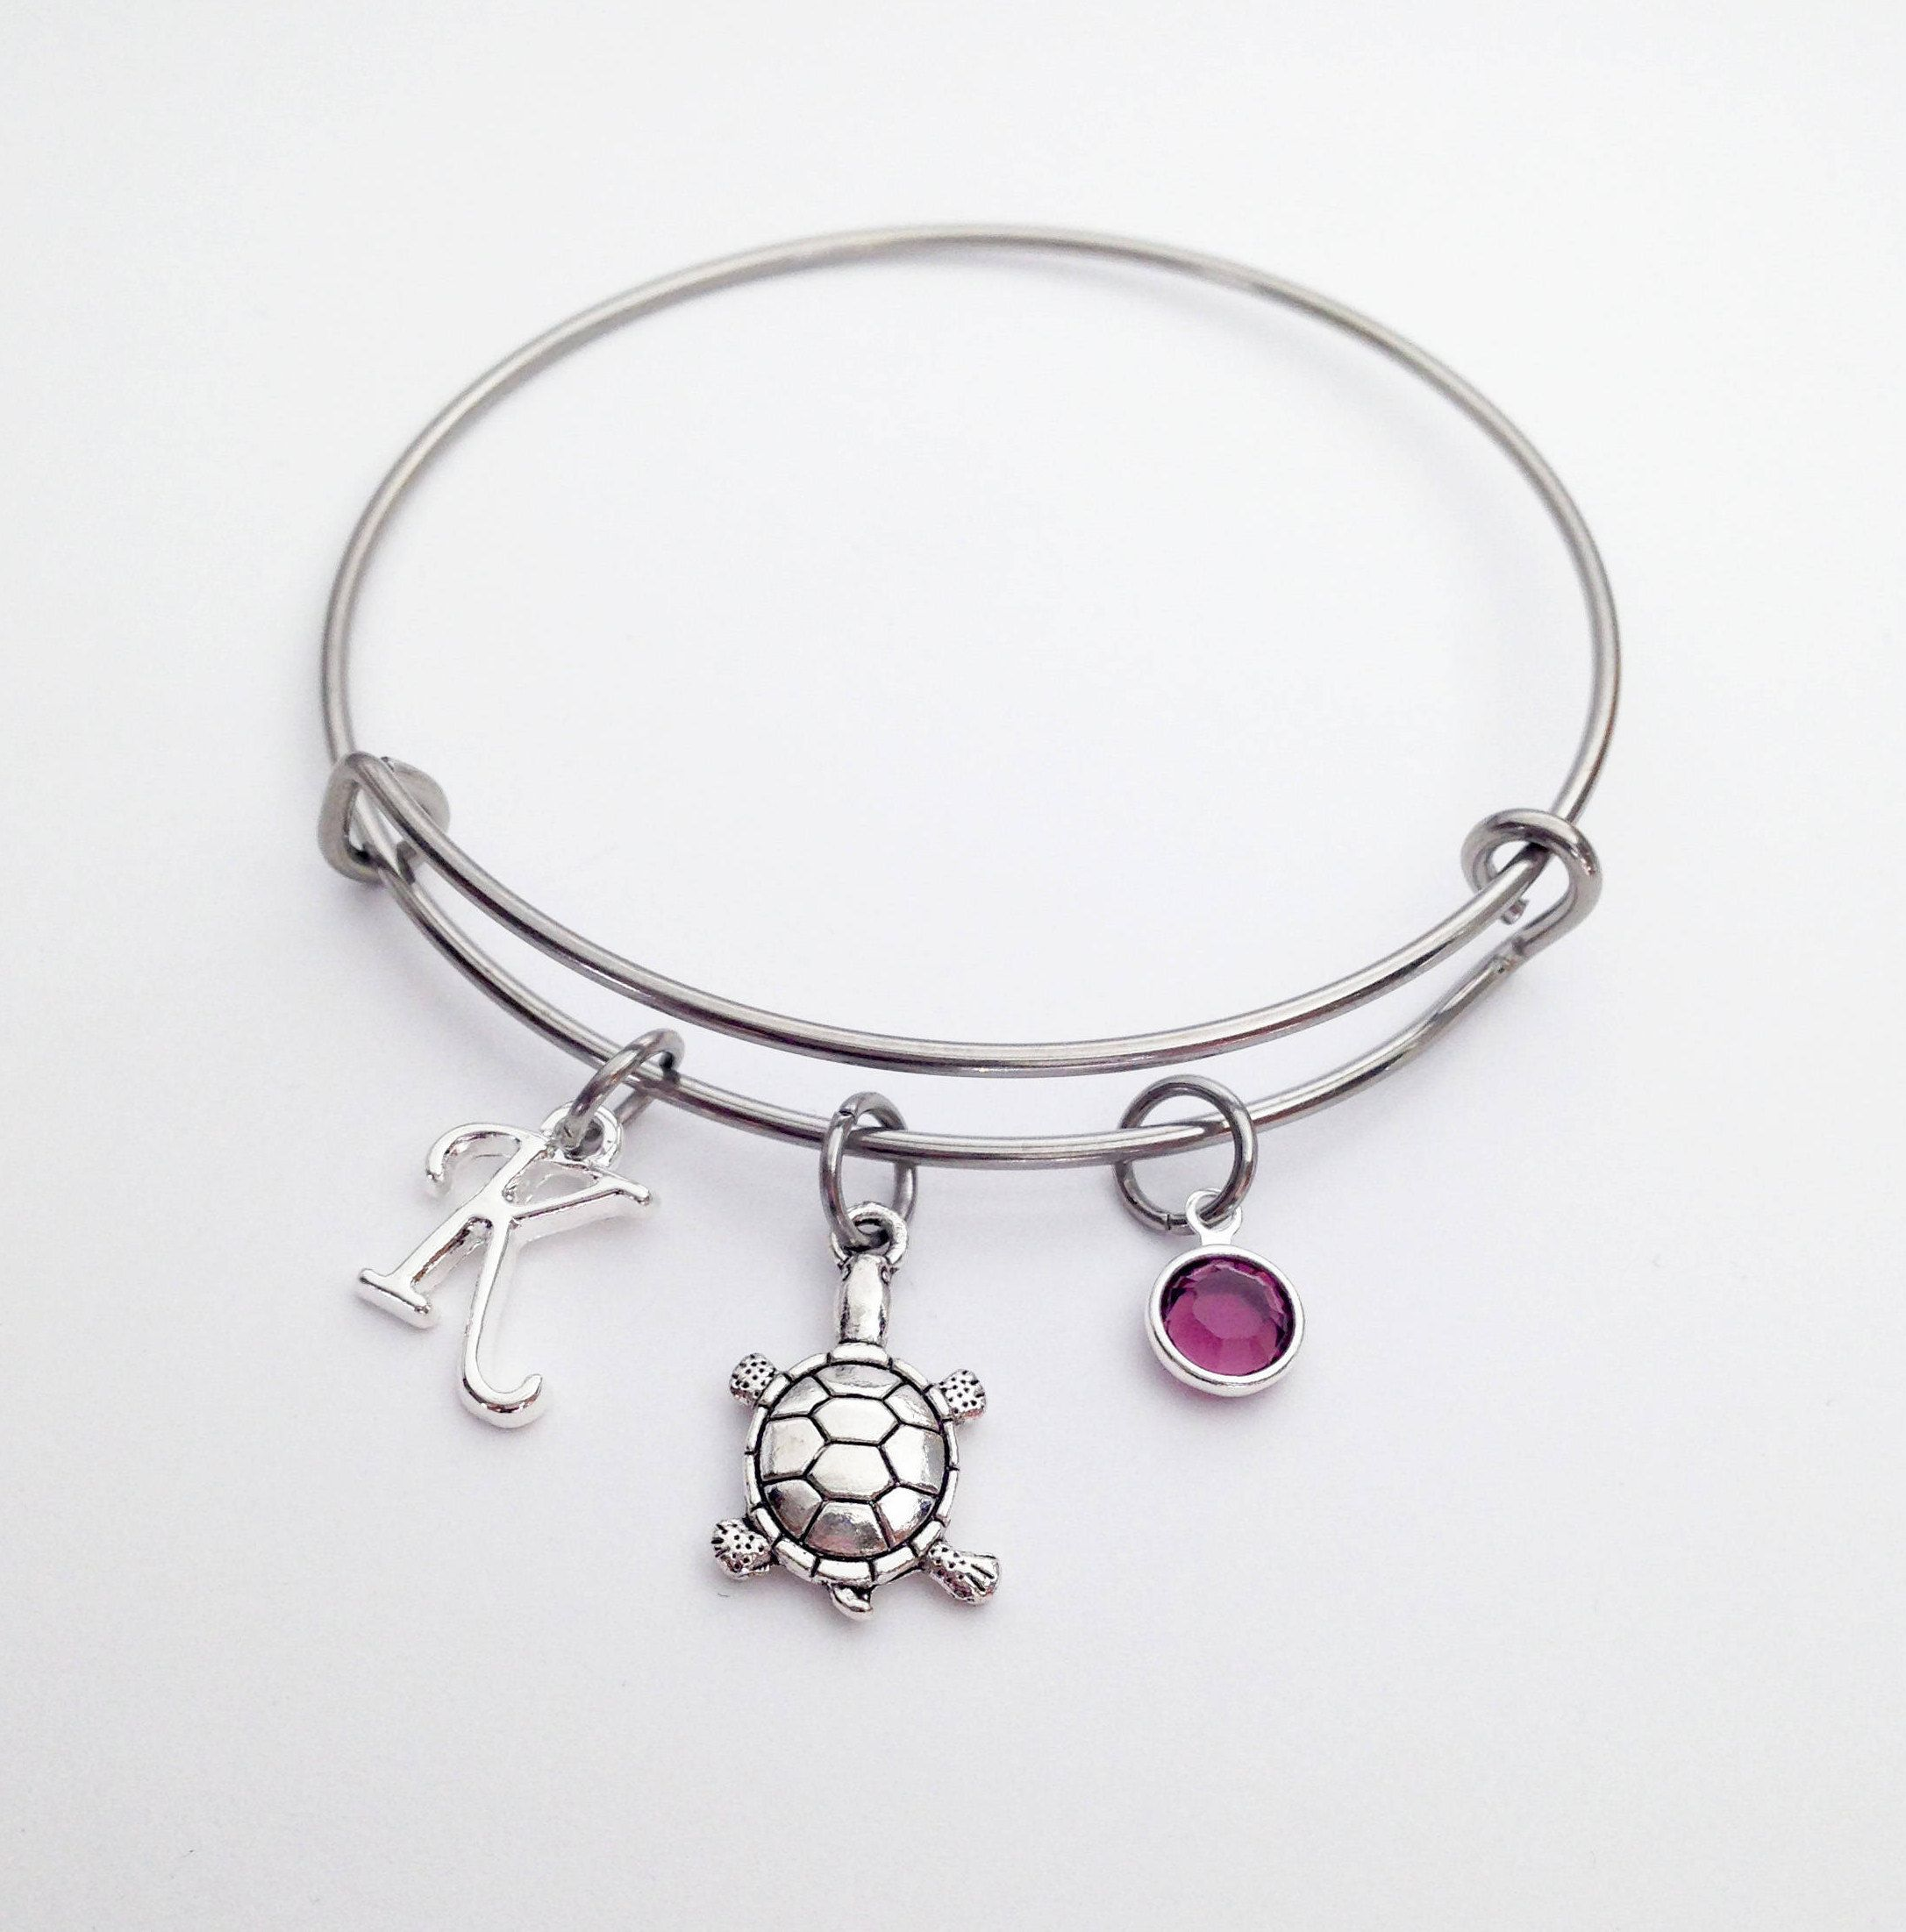 jewellery kxet ball layering p sterling turtle bracelet il silver stretch fullxfull